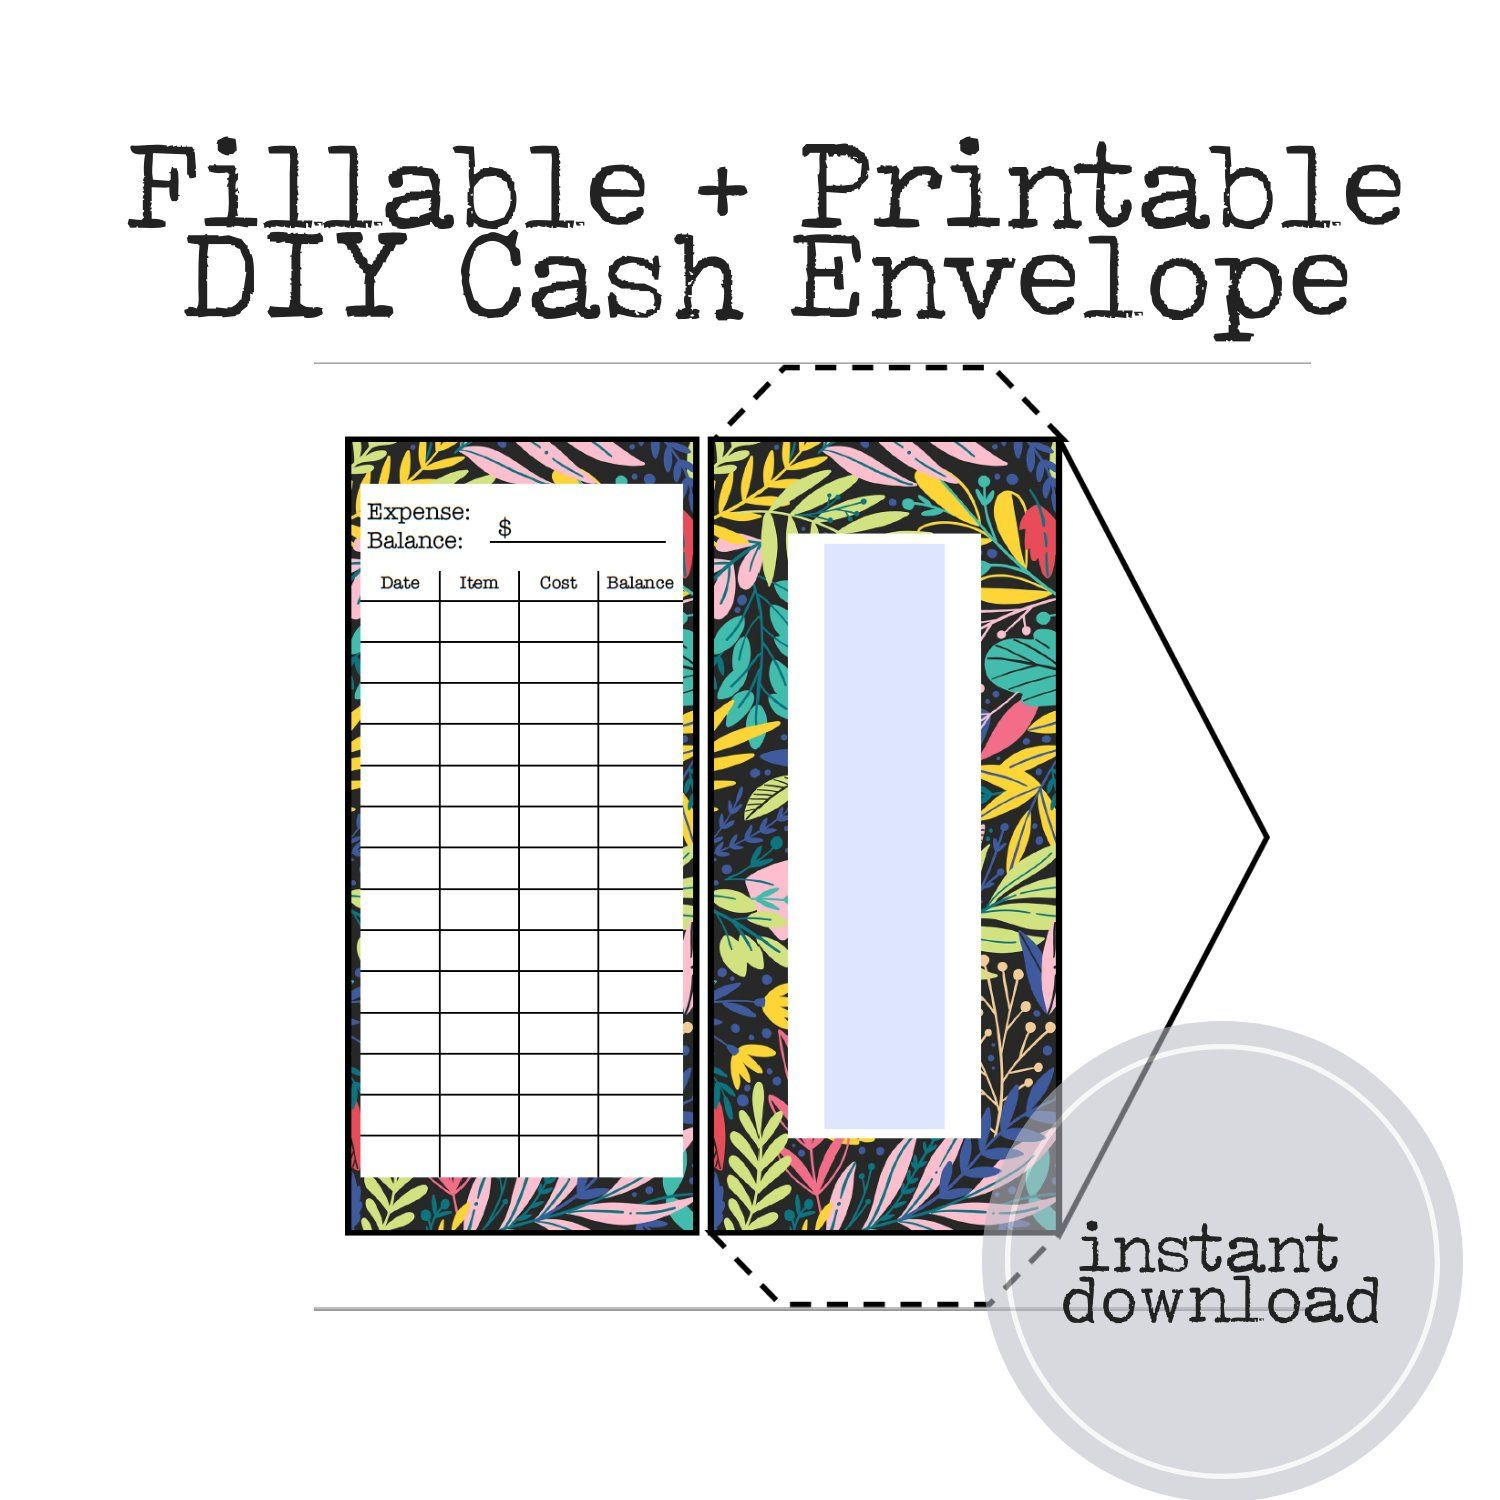 Printable Cash Envelopes Great Way To Stay On Budget Budget